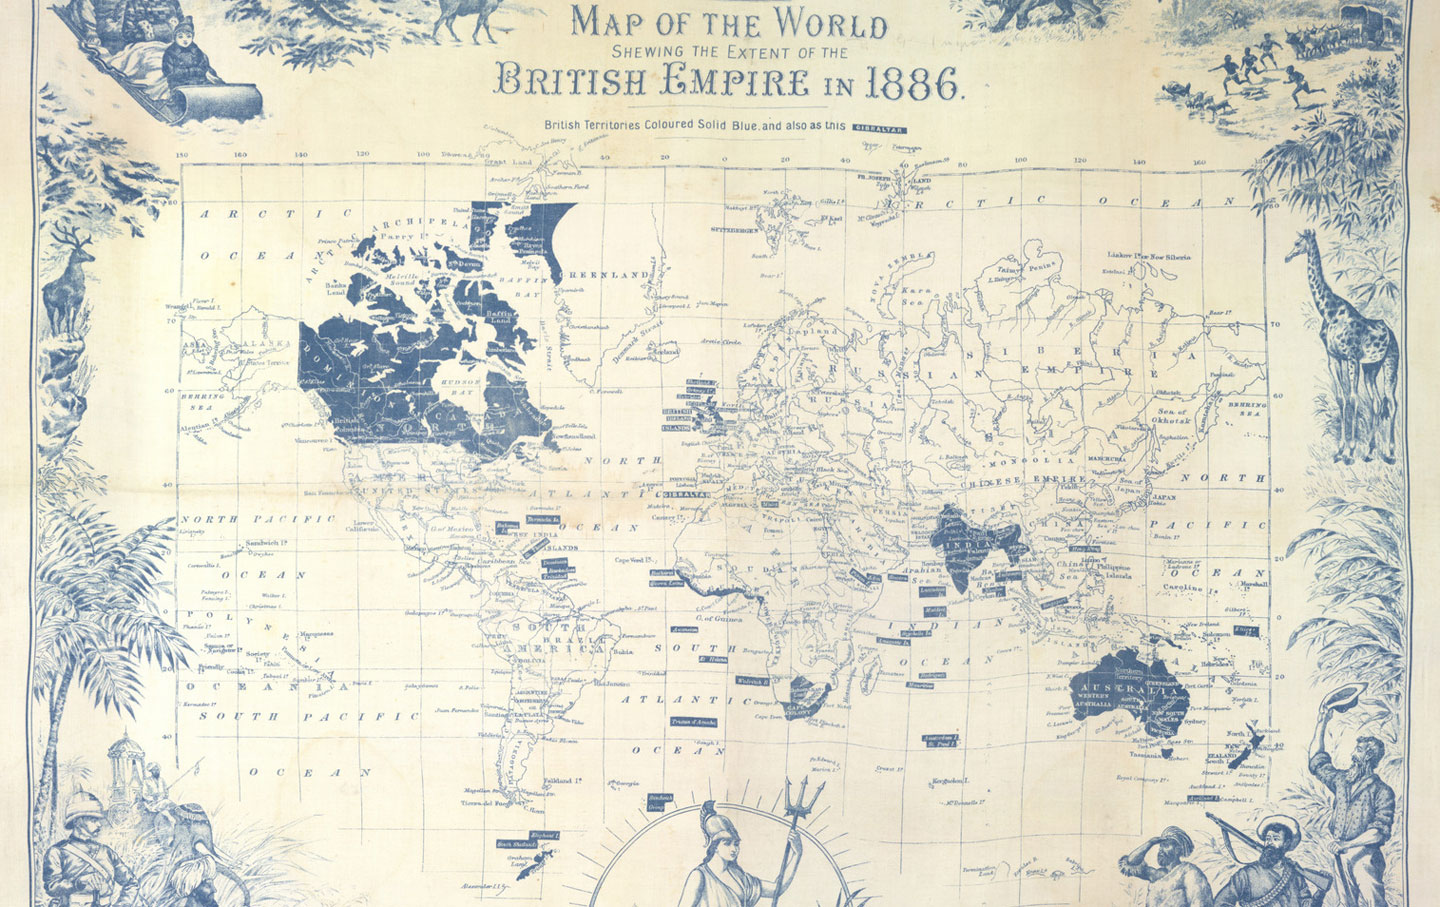 1886 Map of the British Empire